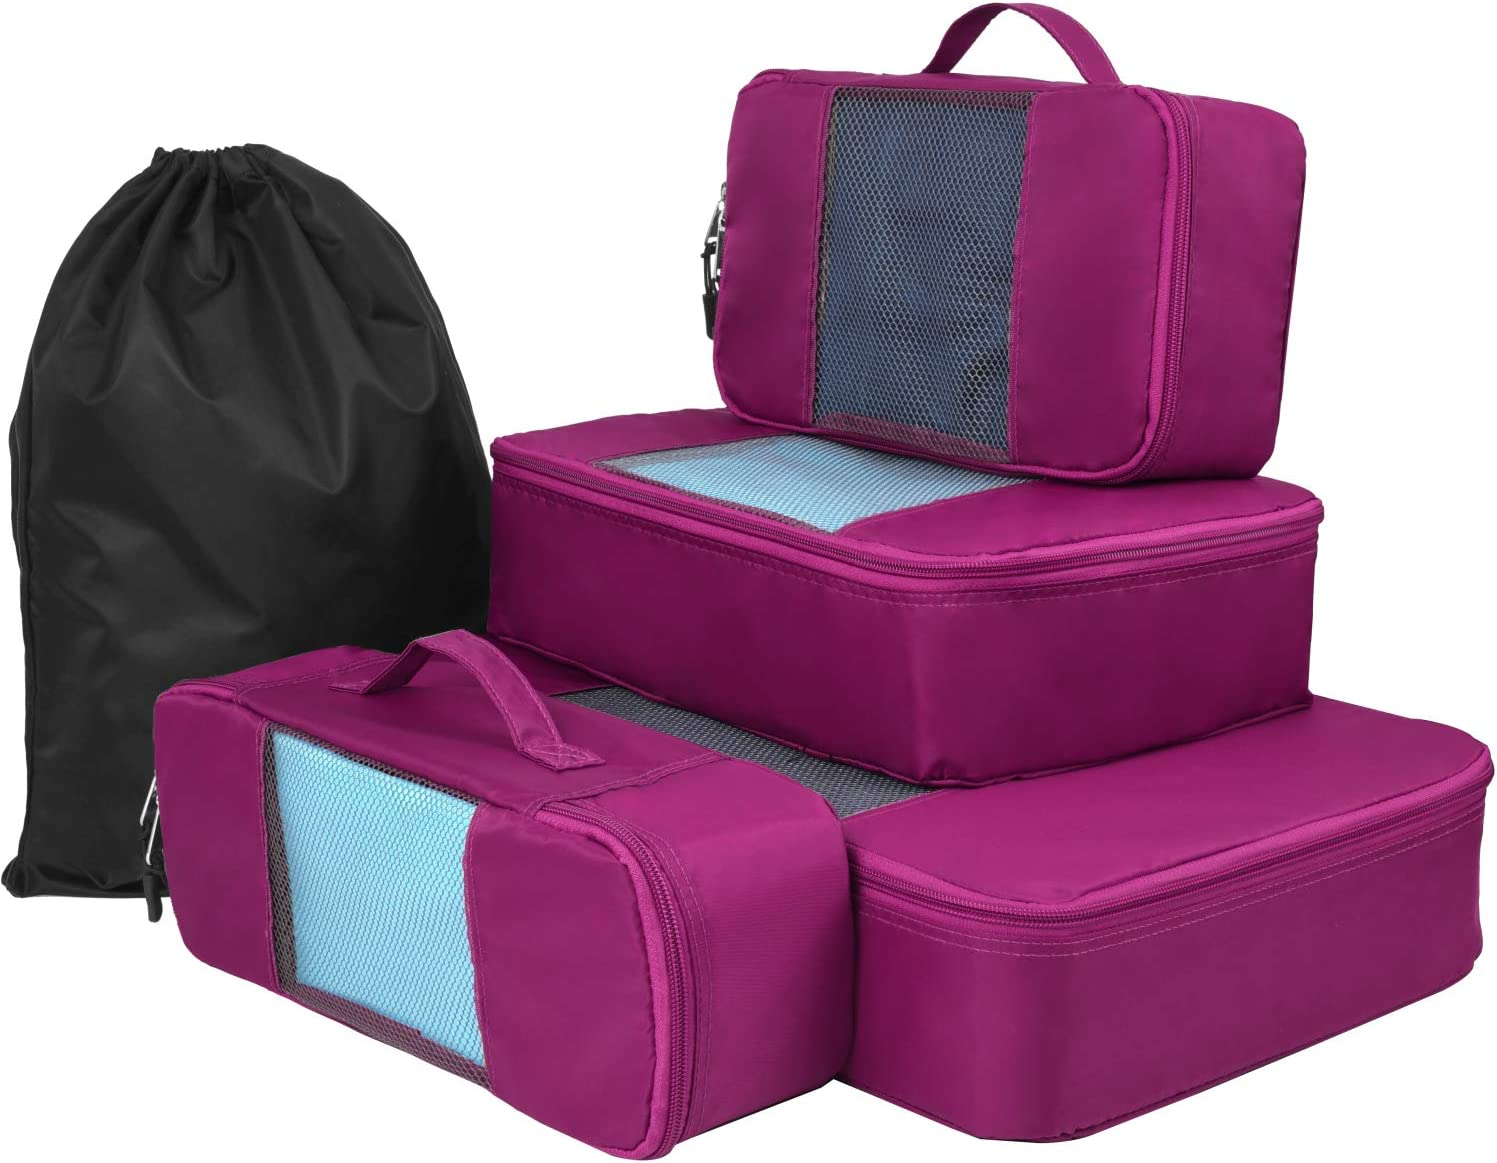 Medium Compression Weekender Luggage Cube Organizers Bags Small Slim Purple, 5 Set Large Packing Cubes for Travel